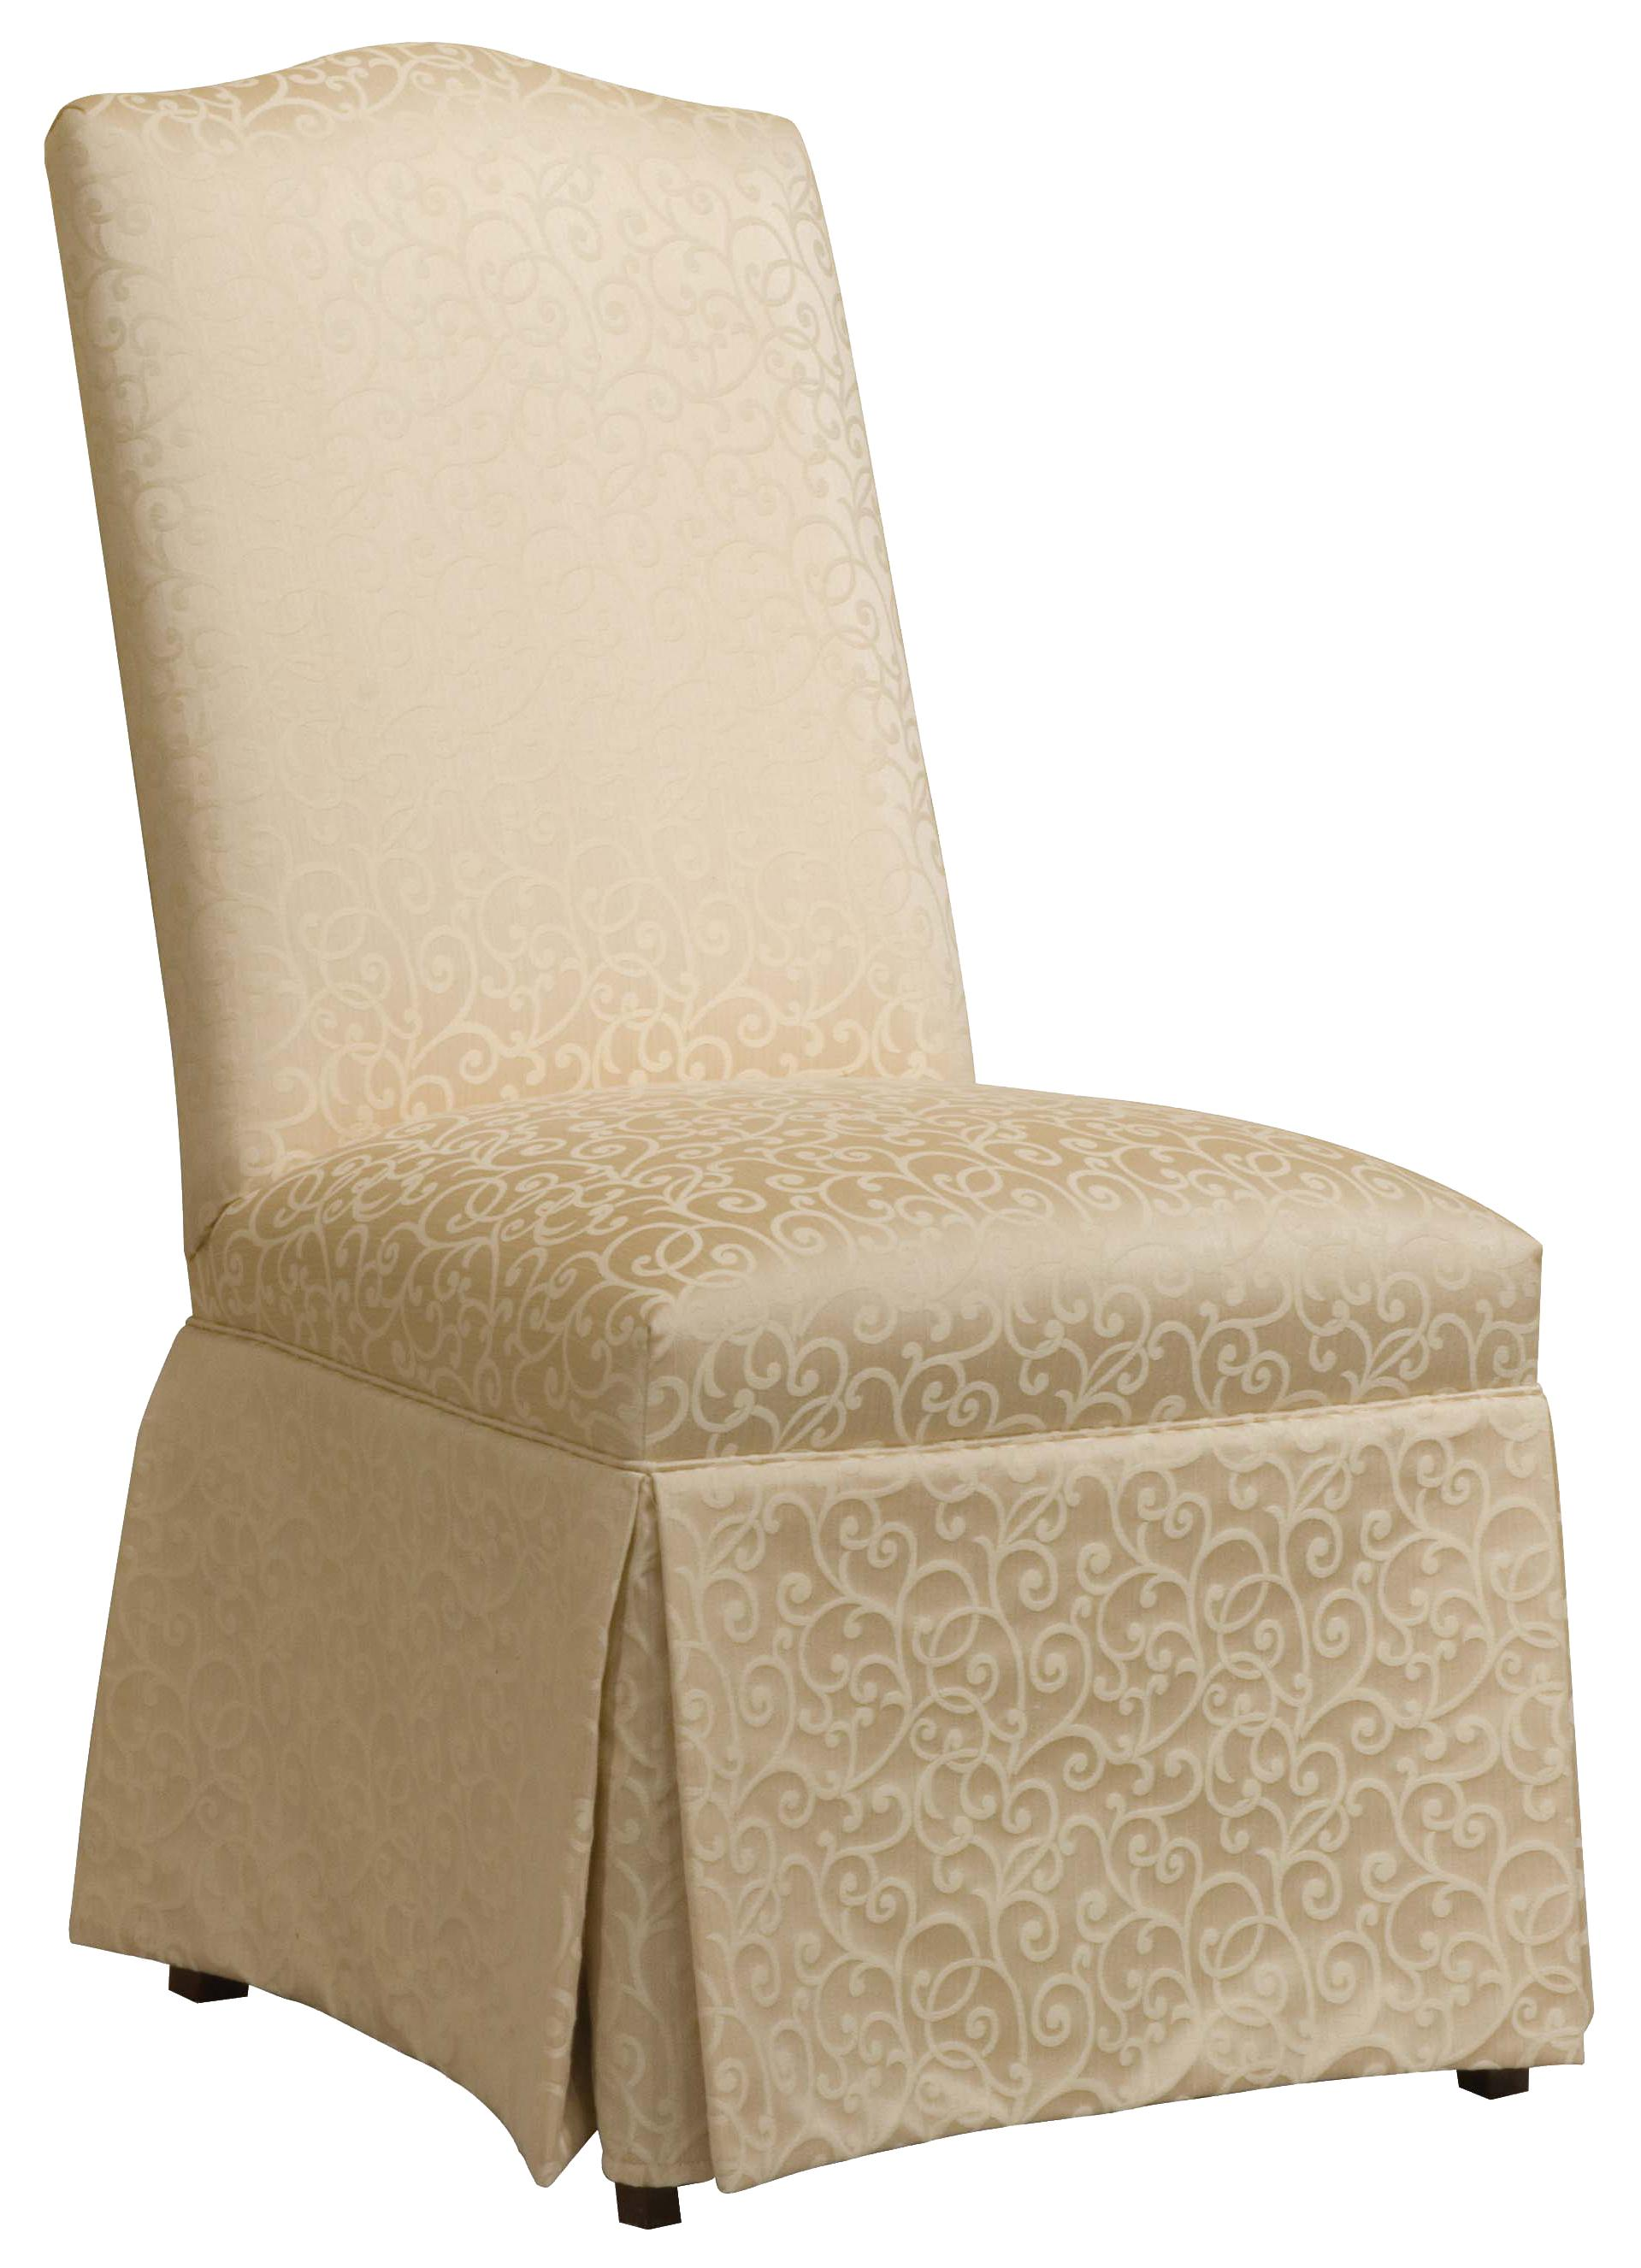 Fairfield Chairs Upholstered Side Chair  - Item Number: 6003-05